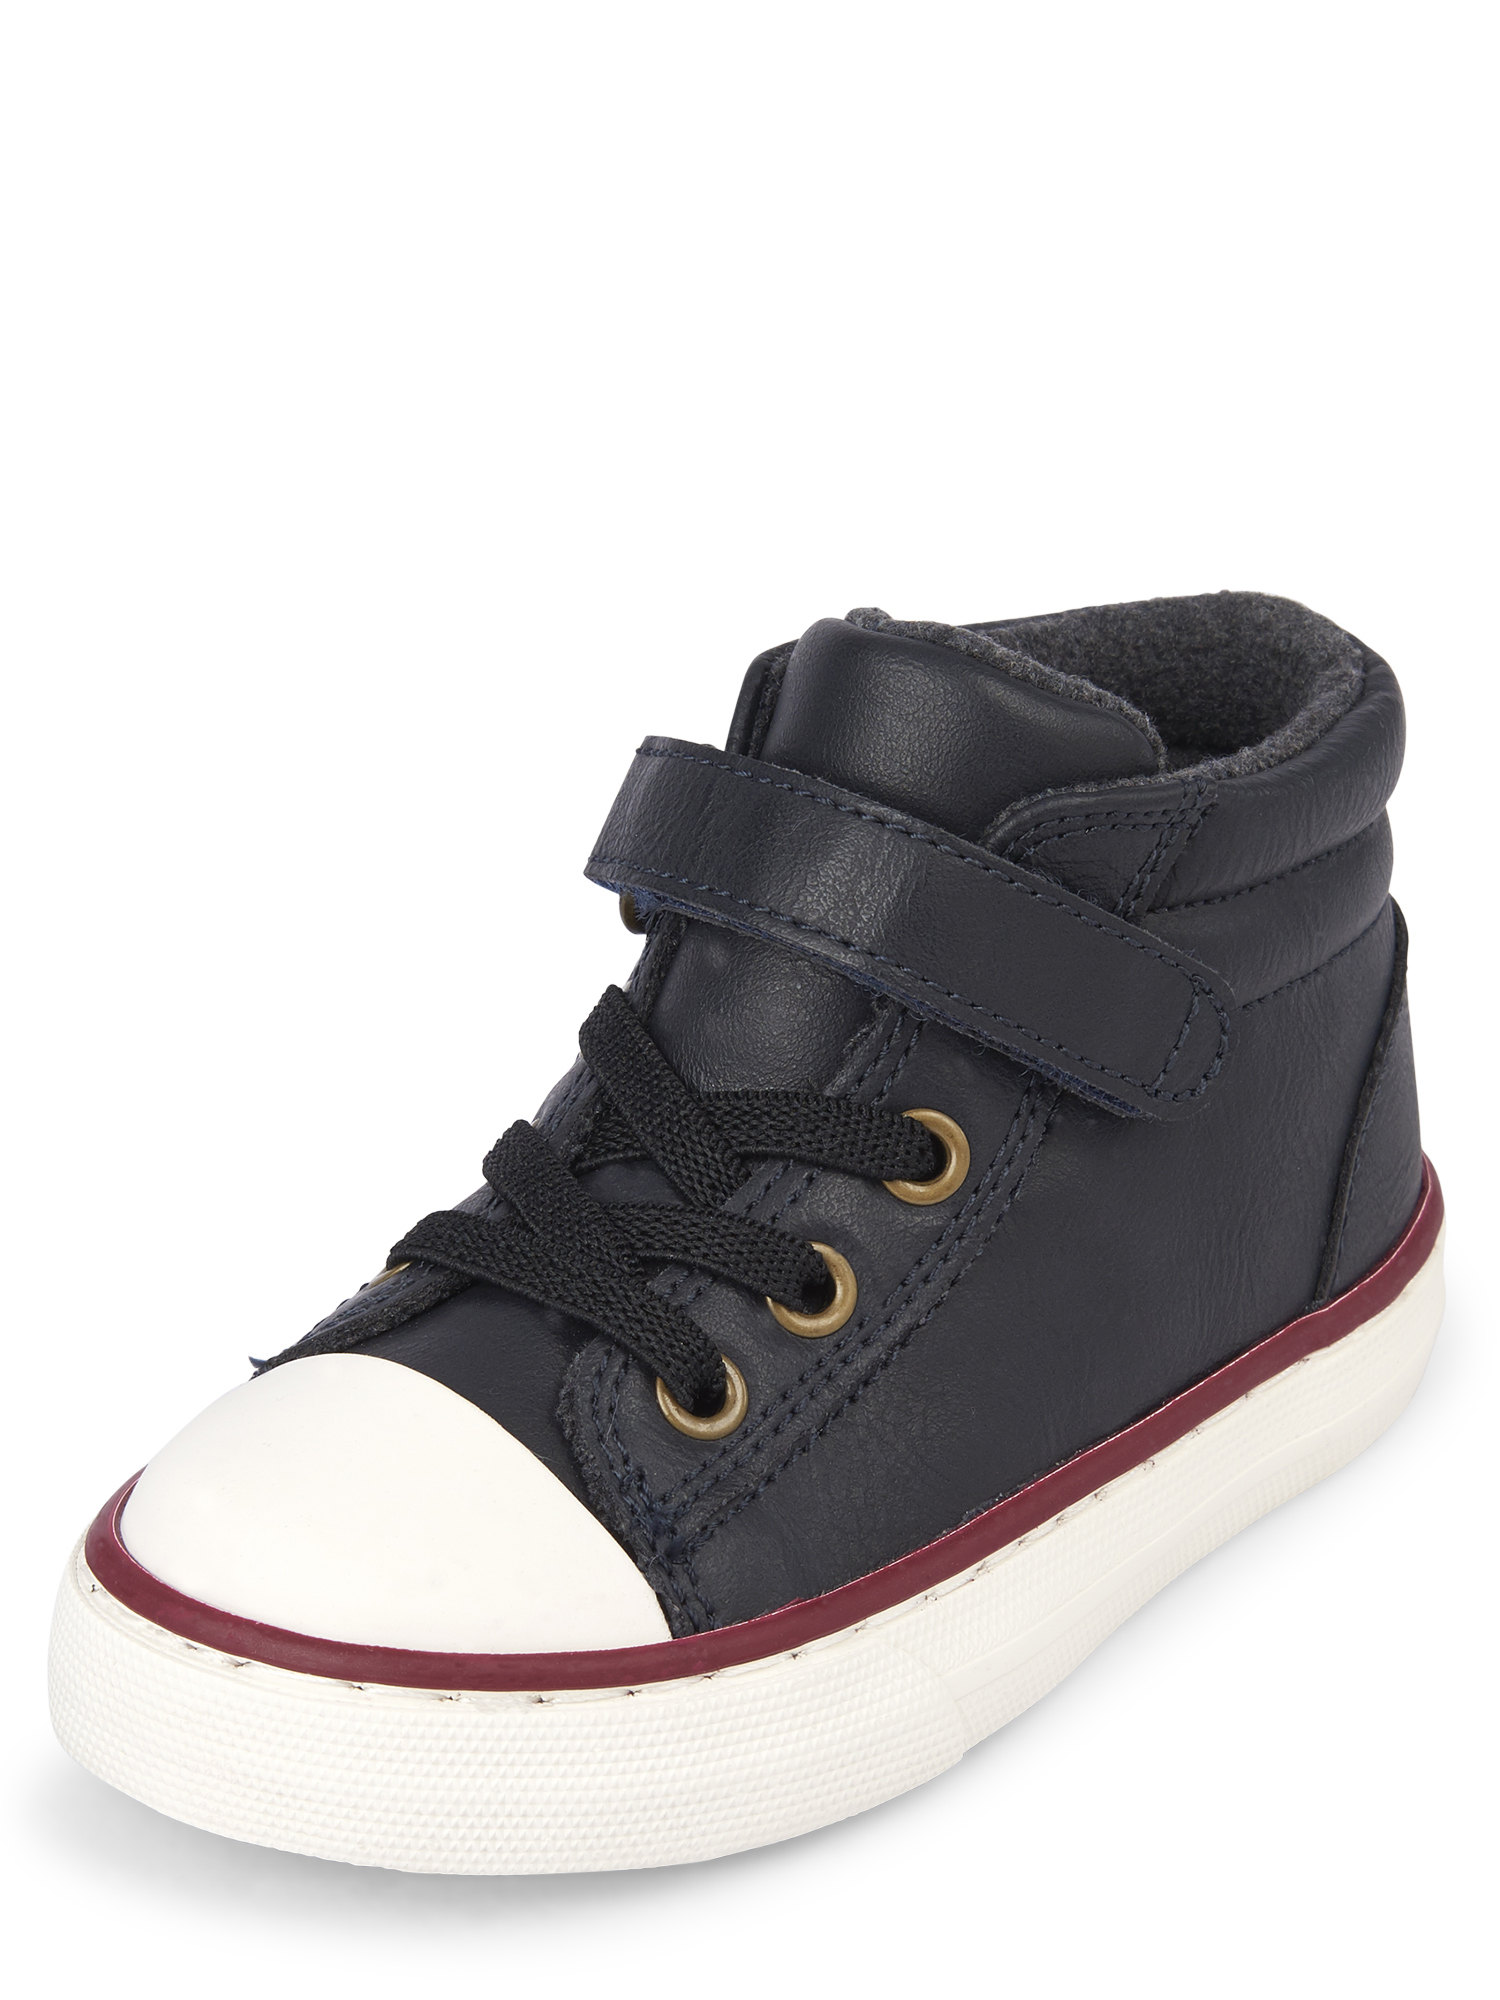 The Children's Place Toddler Boys' Mid Rise Casual Sneaker